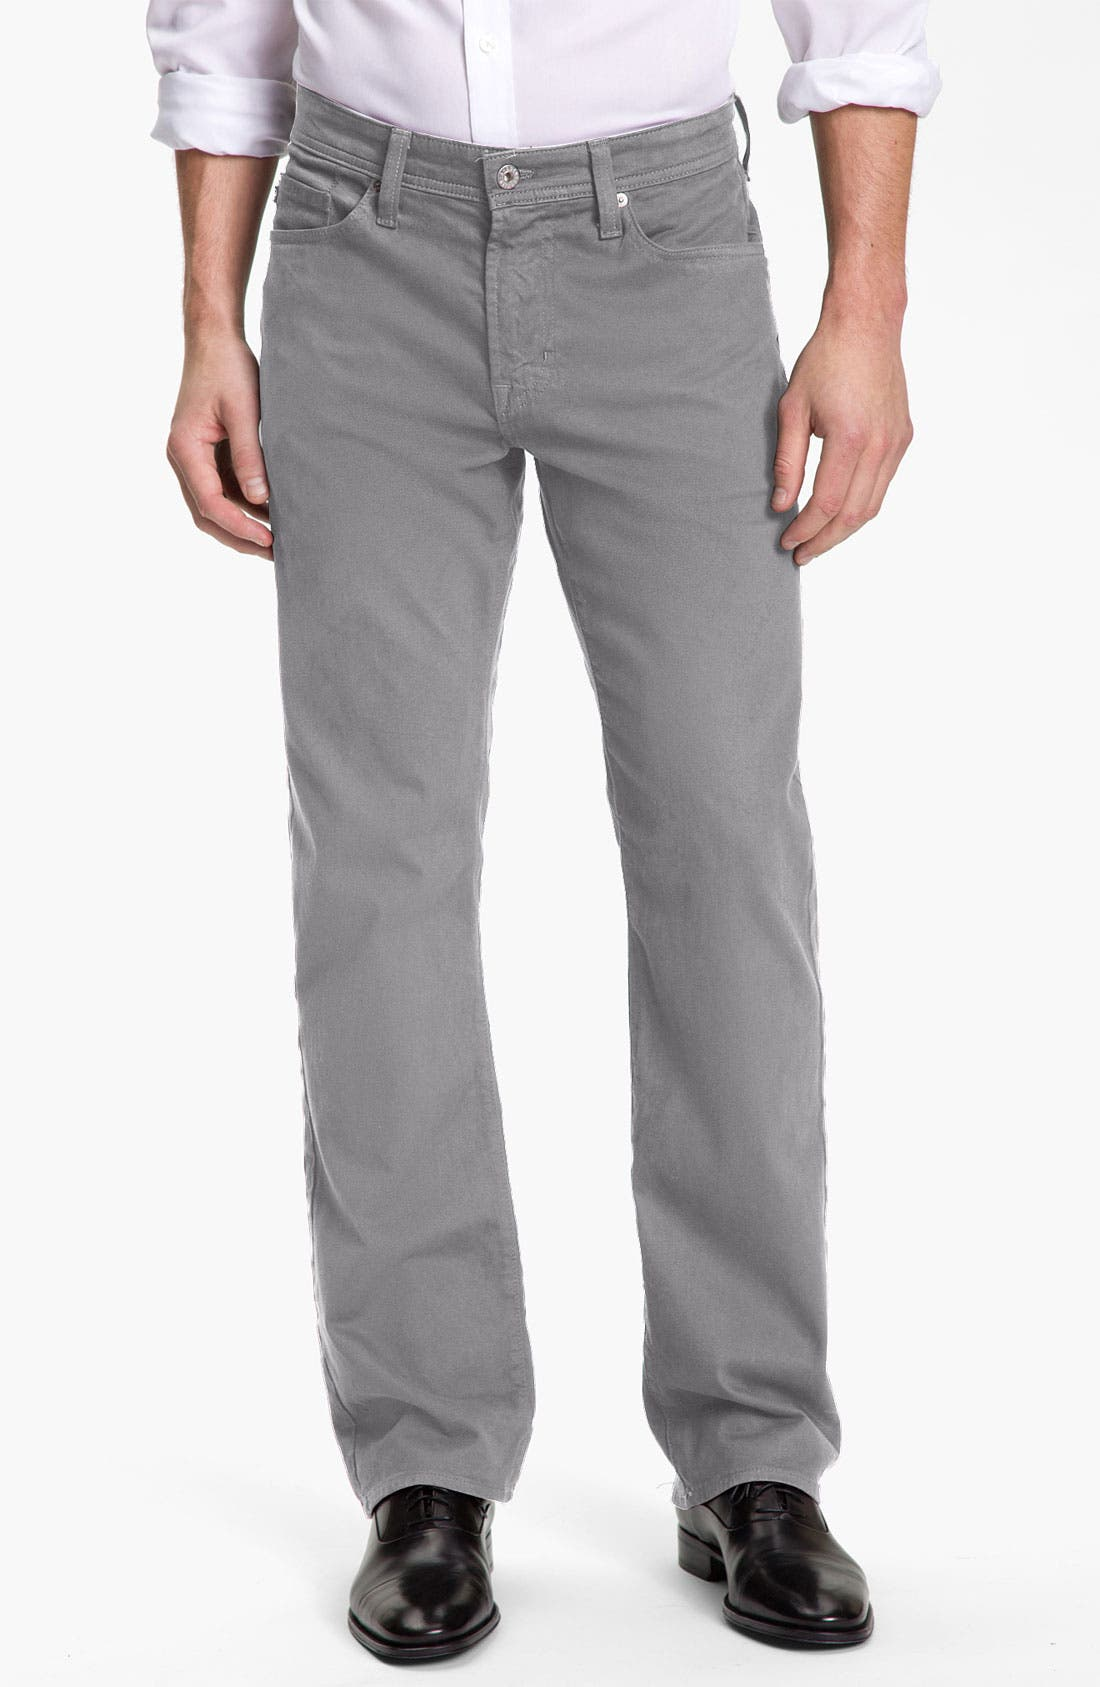 'Protégé SUD' Straight Leg Pants,                             Main thumbnail 1, color,                             Stone Grey